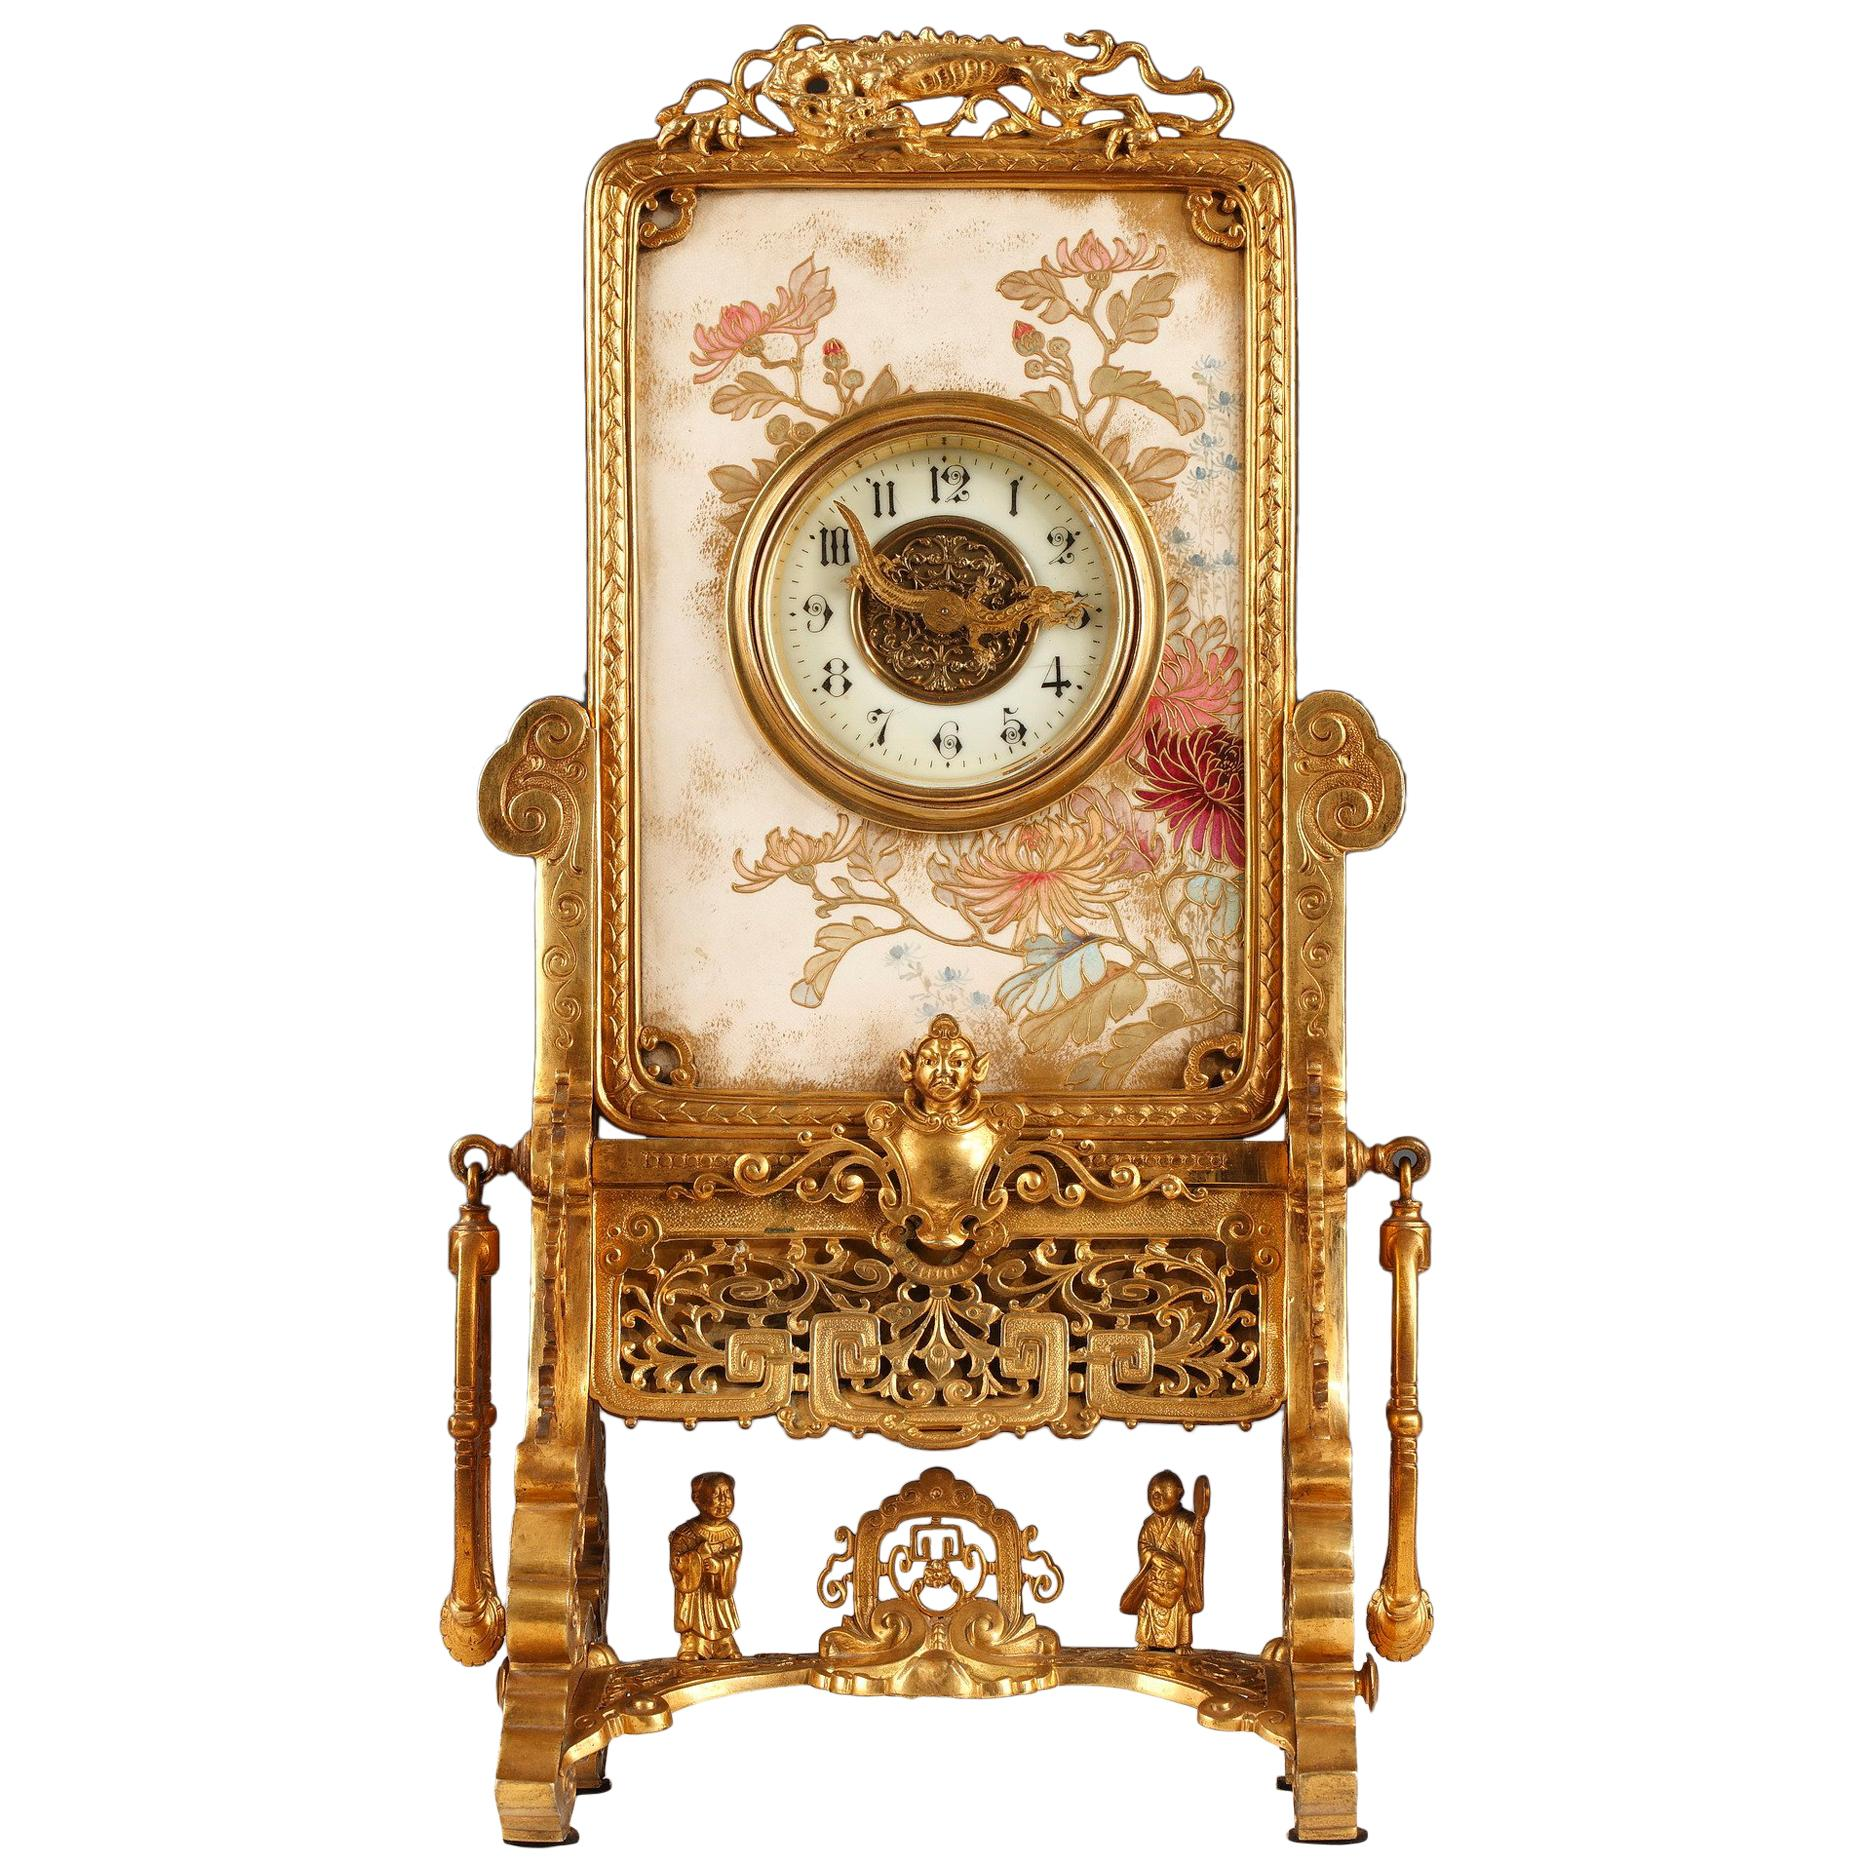 Japanese Style Clock Attributed to L'Escalier de Cristal, France, Circa 1890